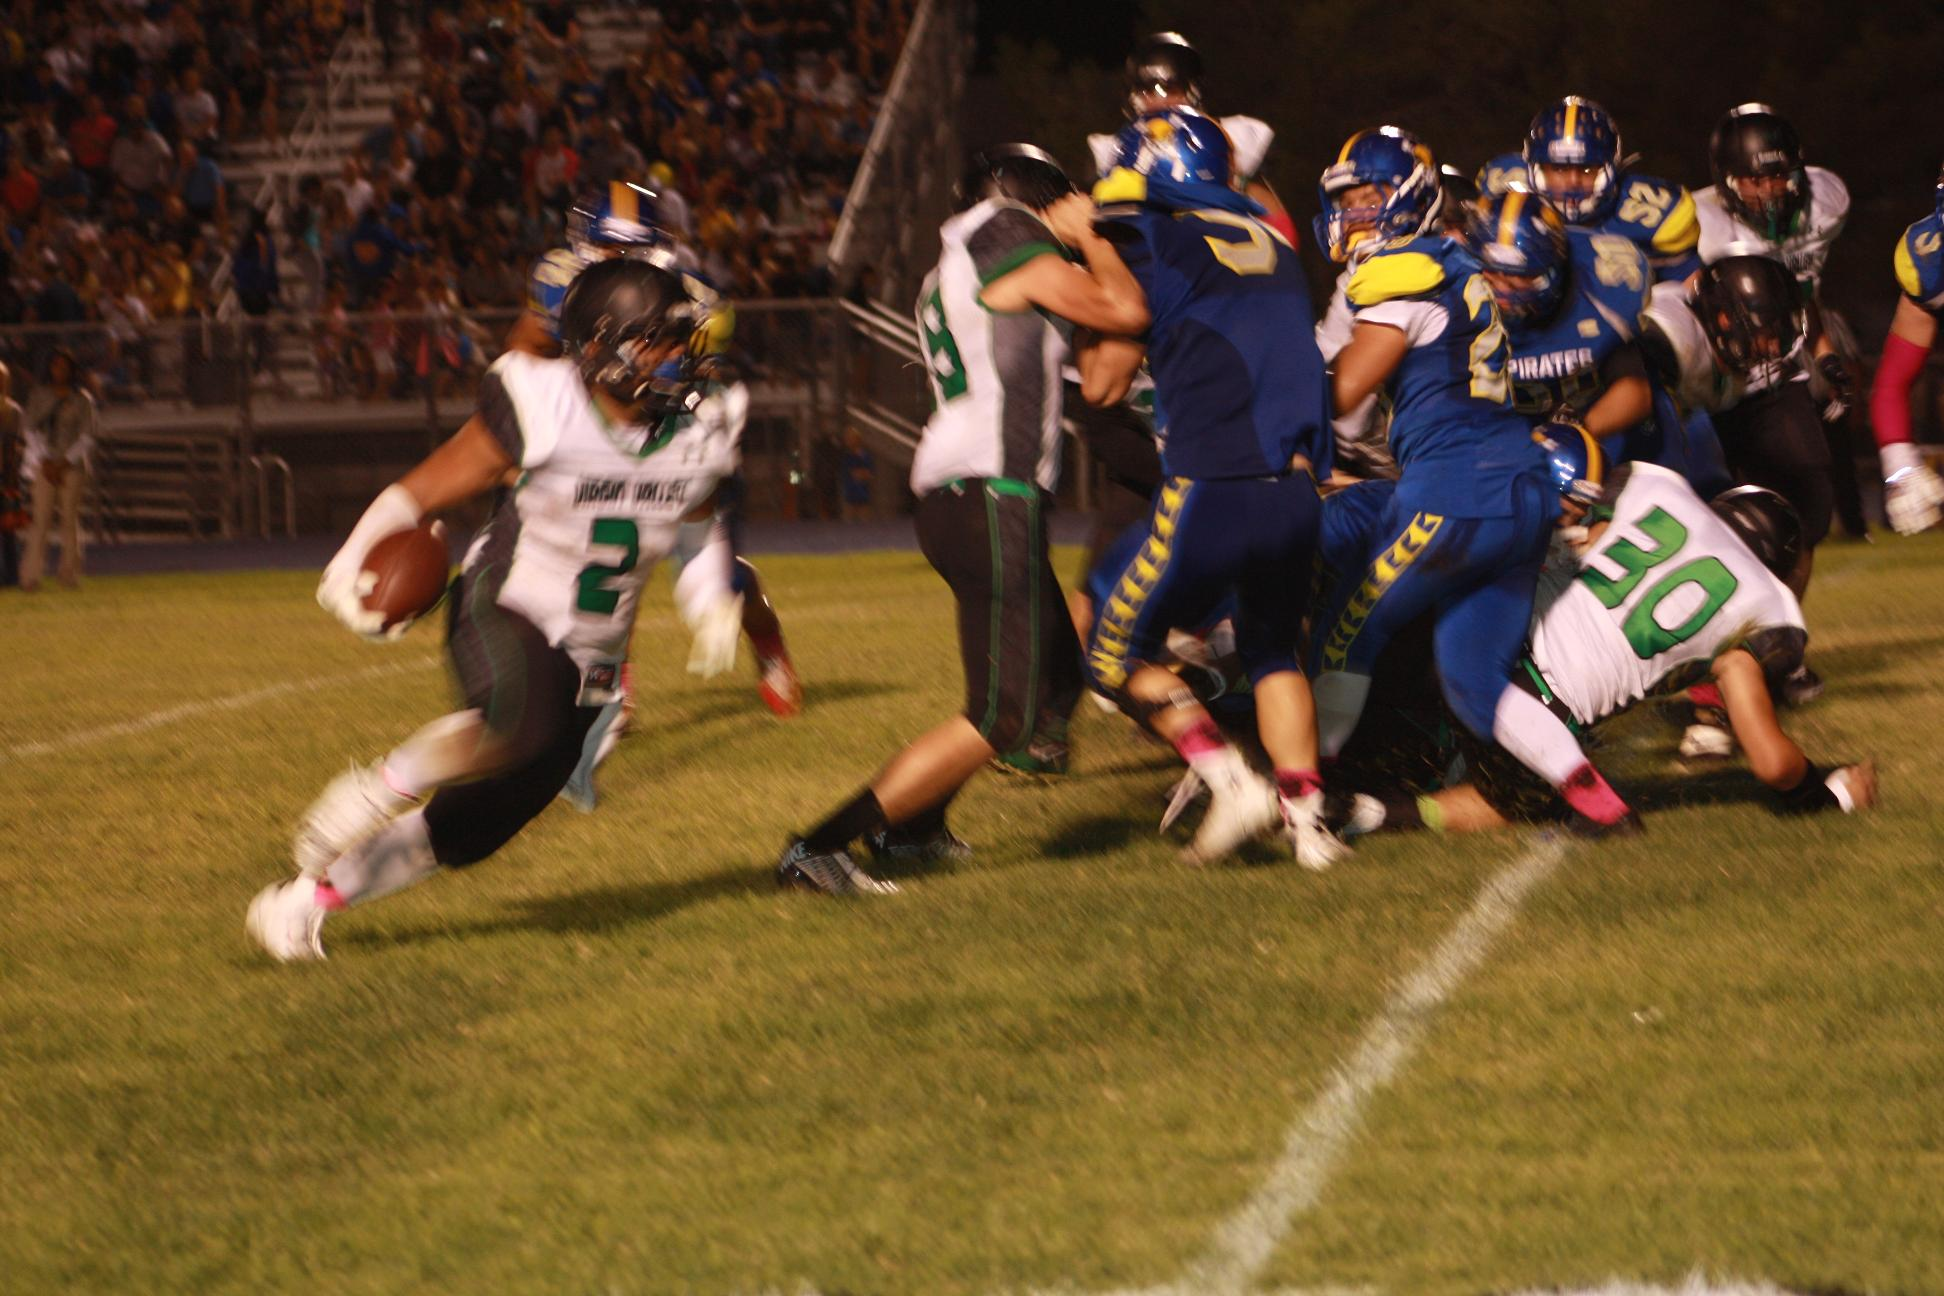 Turnovers doom Bulldogs in 35-7 loss to Pirates